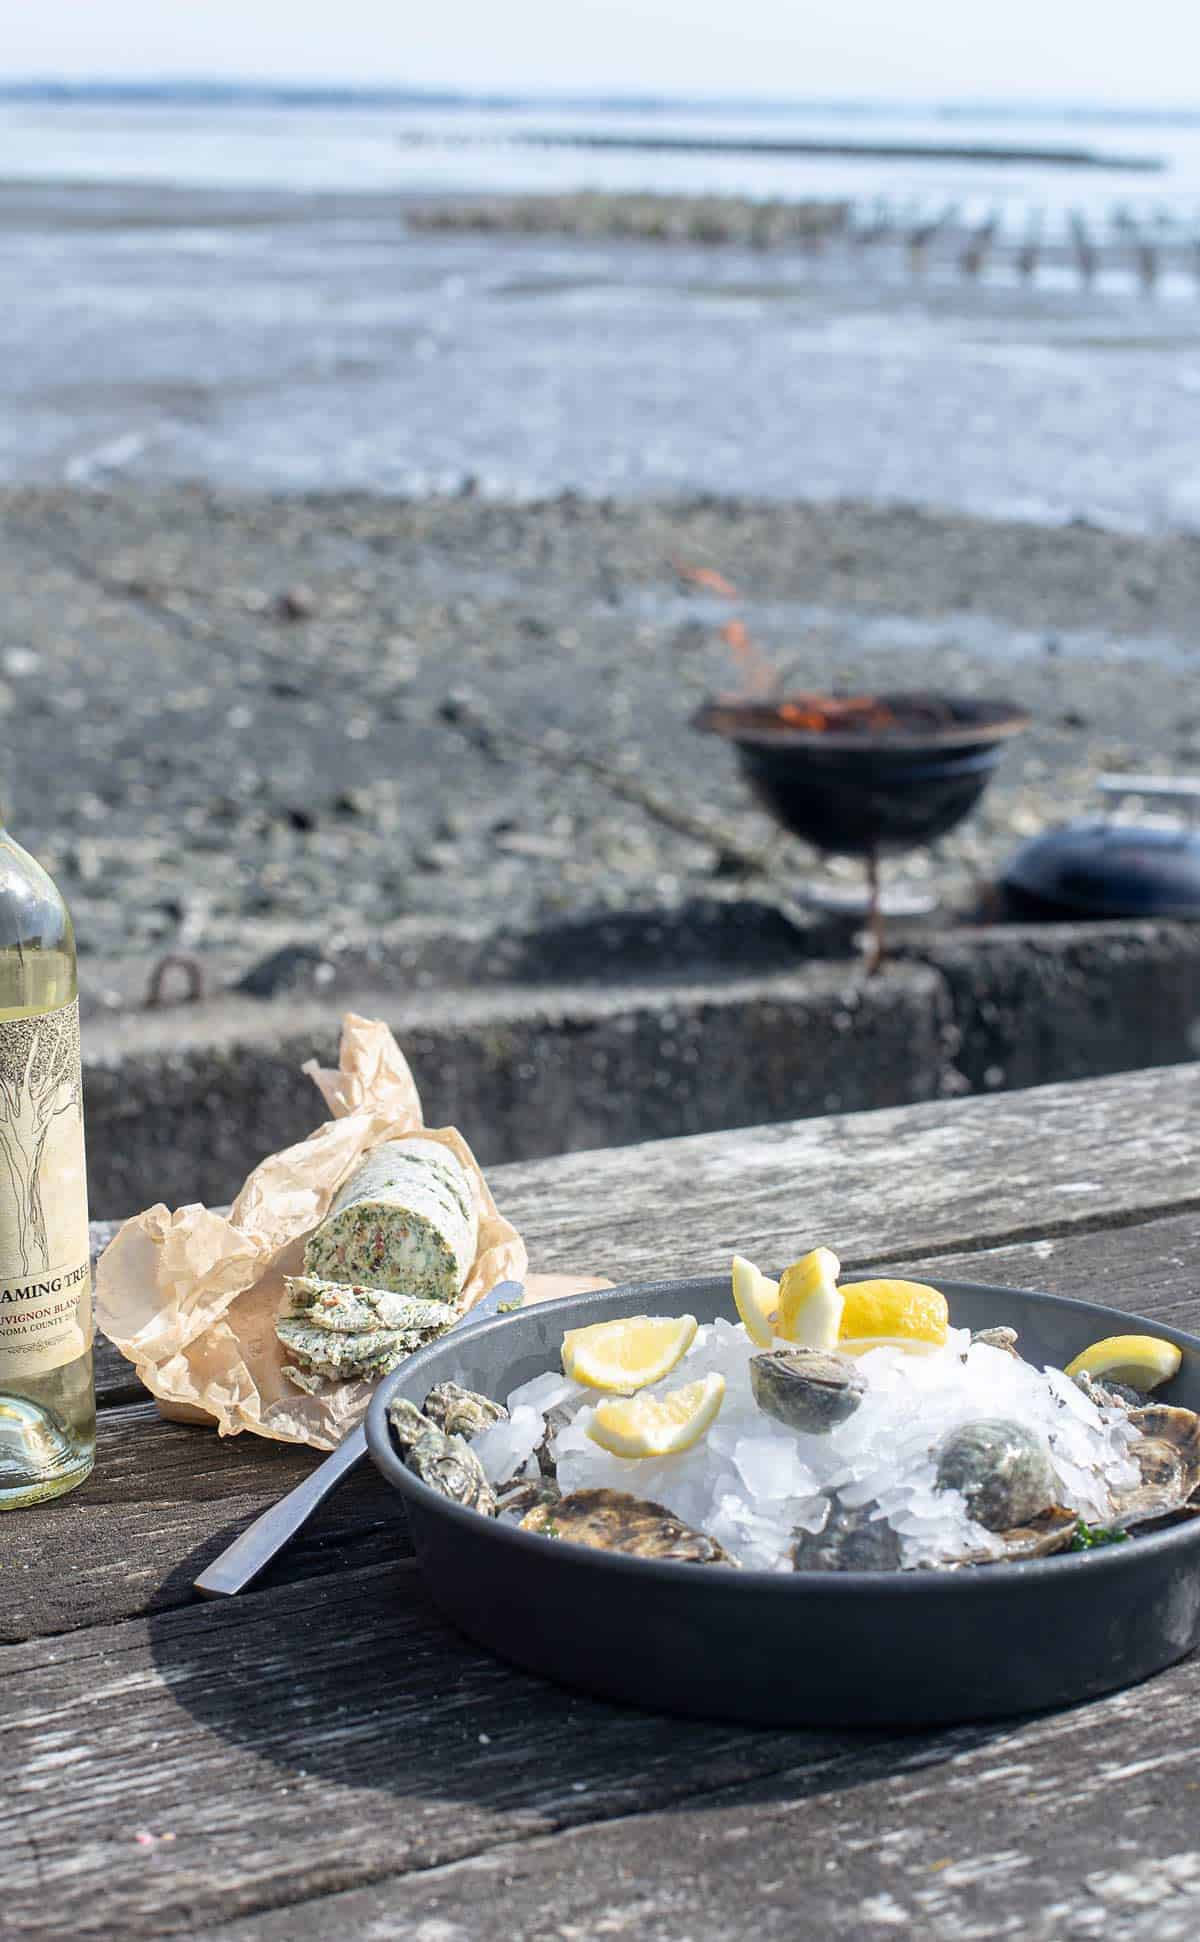 Bacon Blue Cheese Compound Butter with fresh oysters and wine on the beach